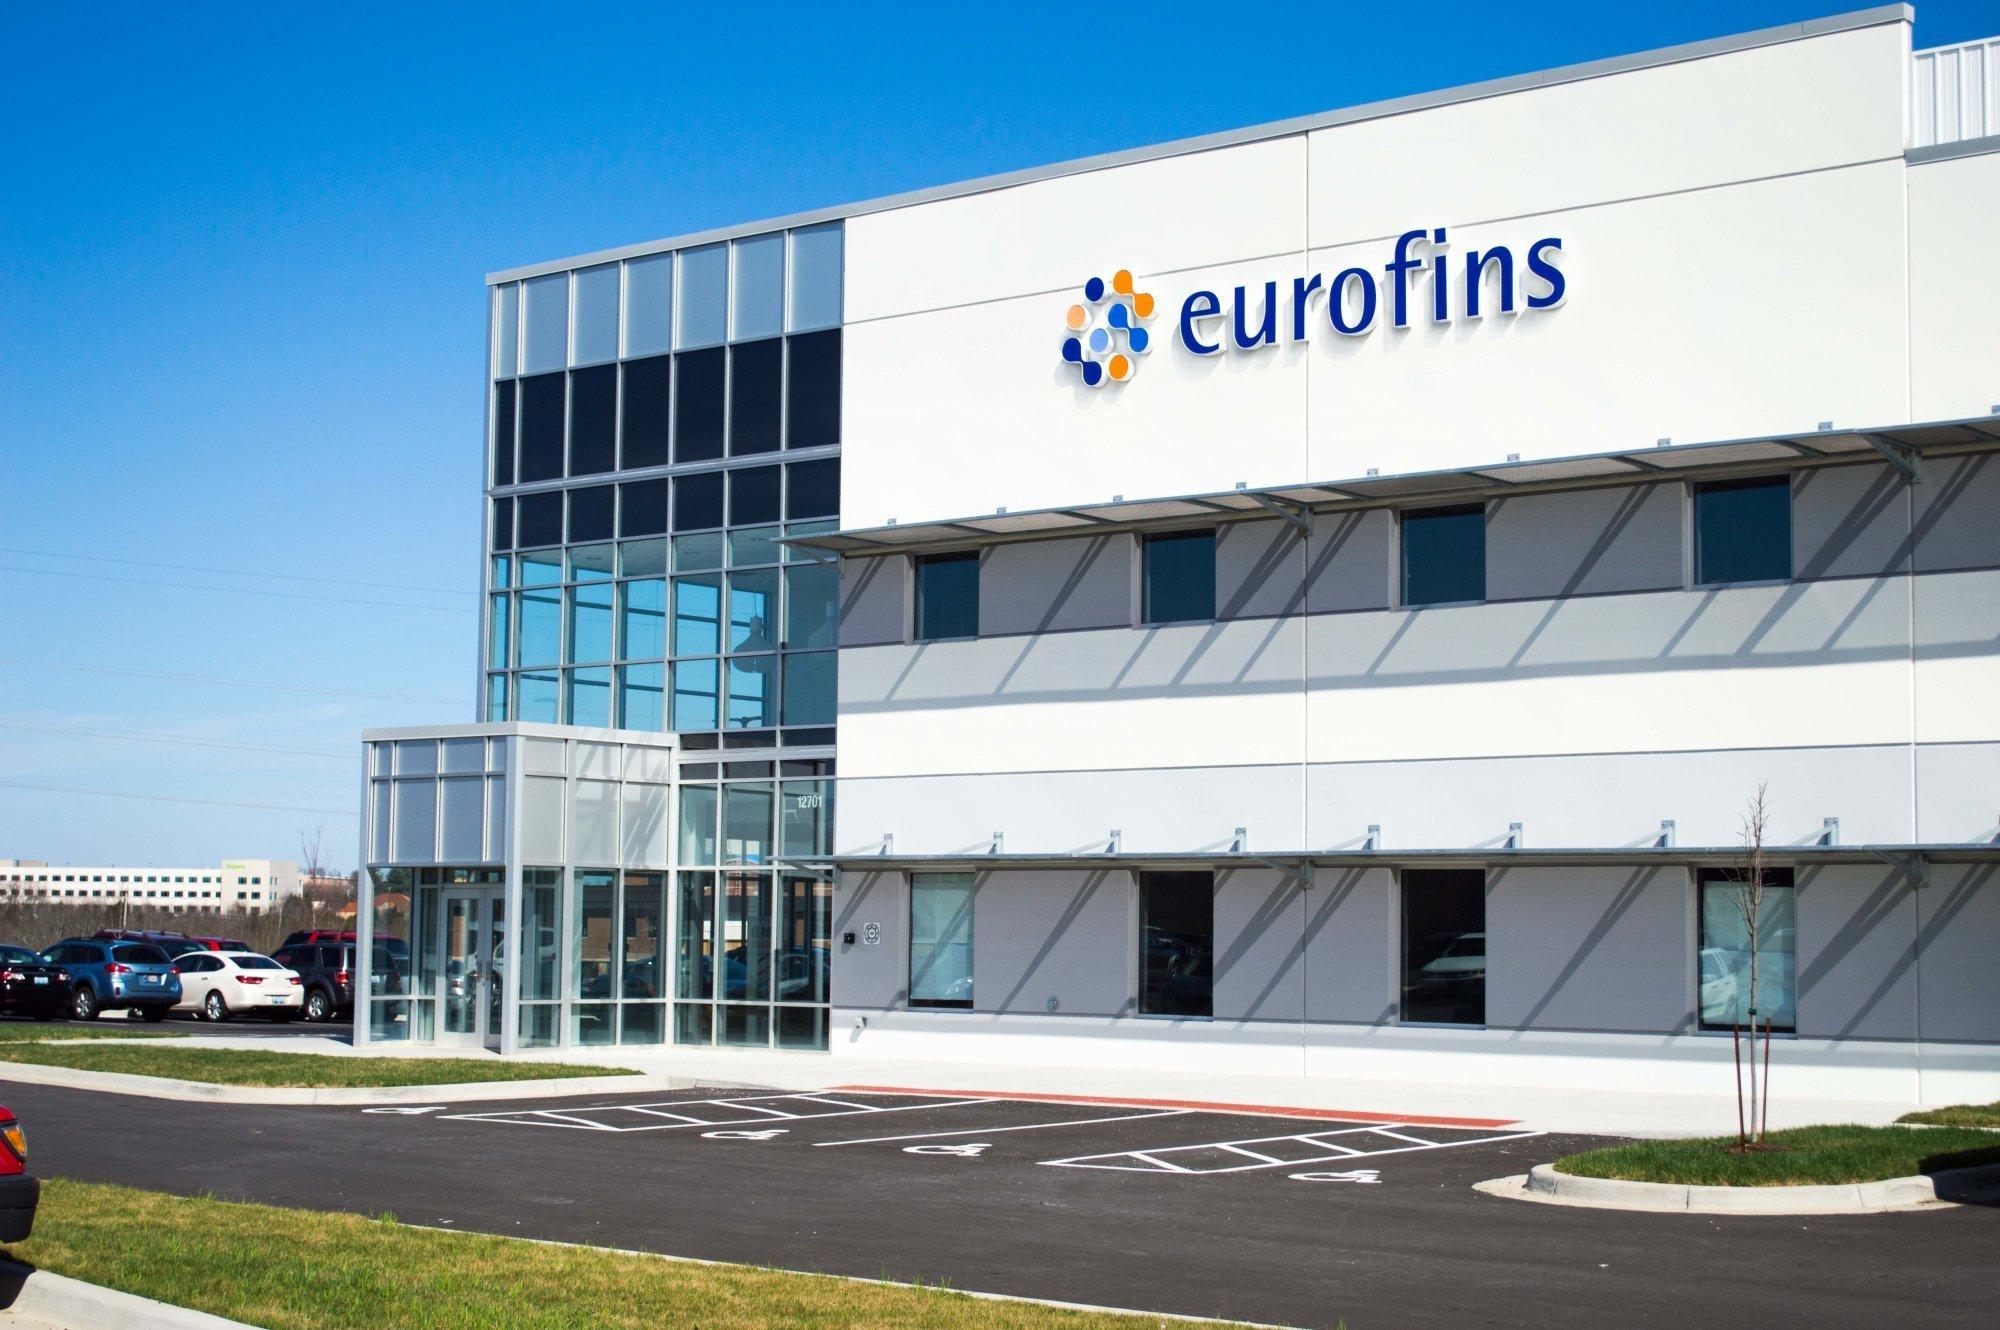 eurofins-office-laboratory-facility-exterior-sideview